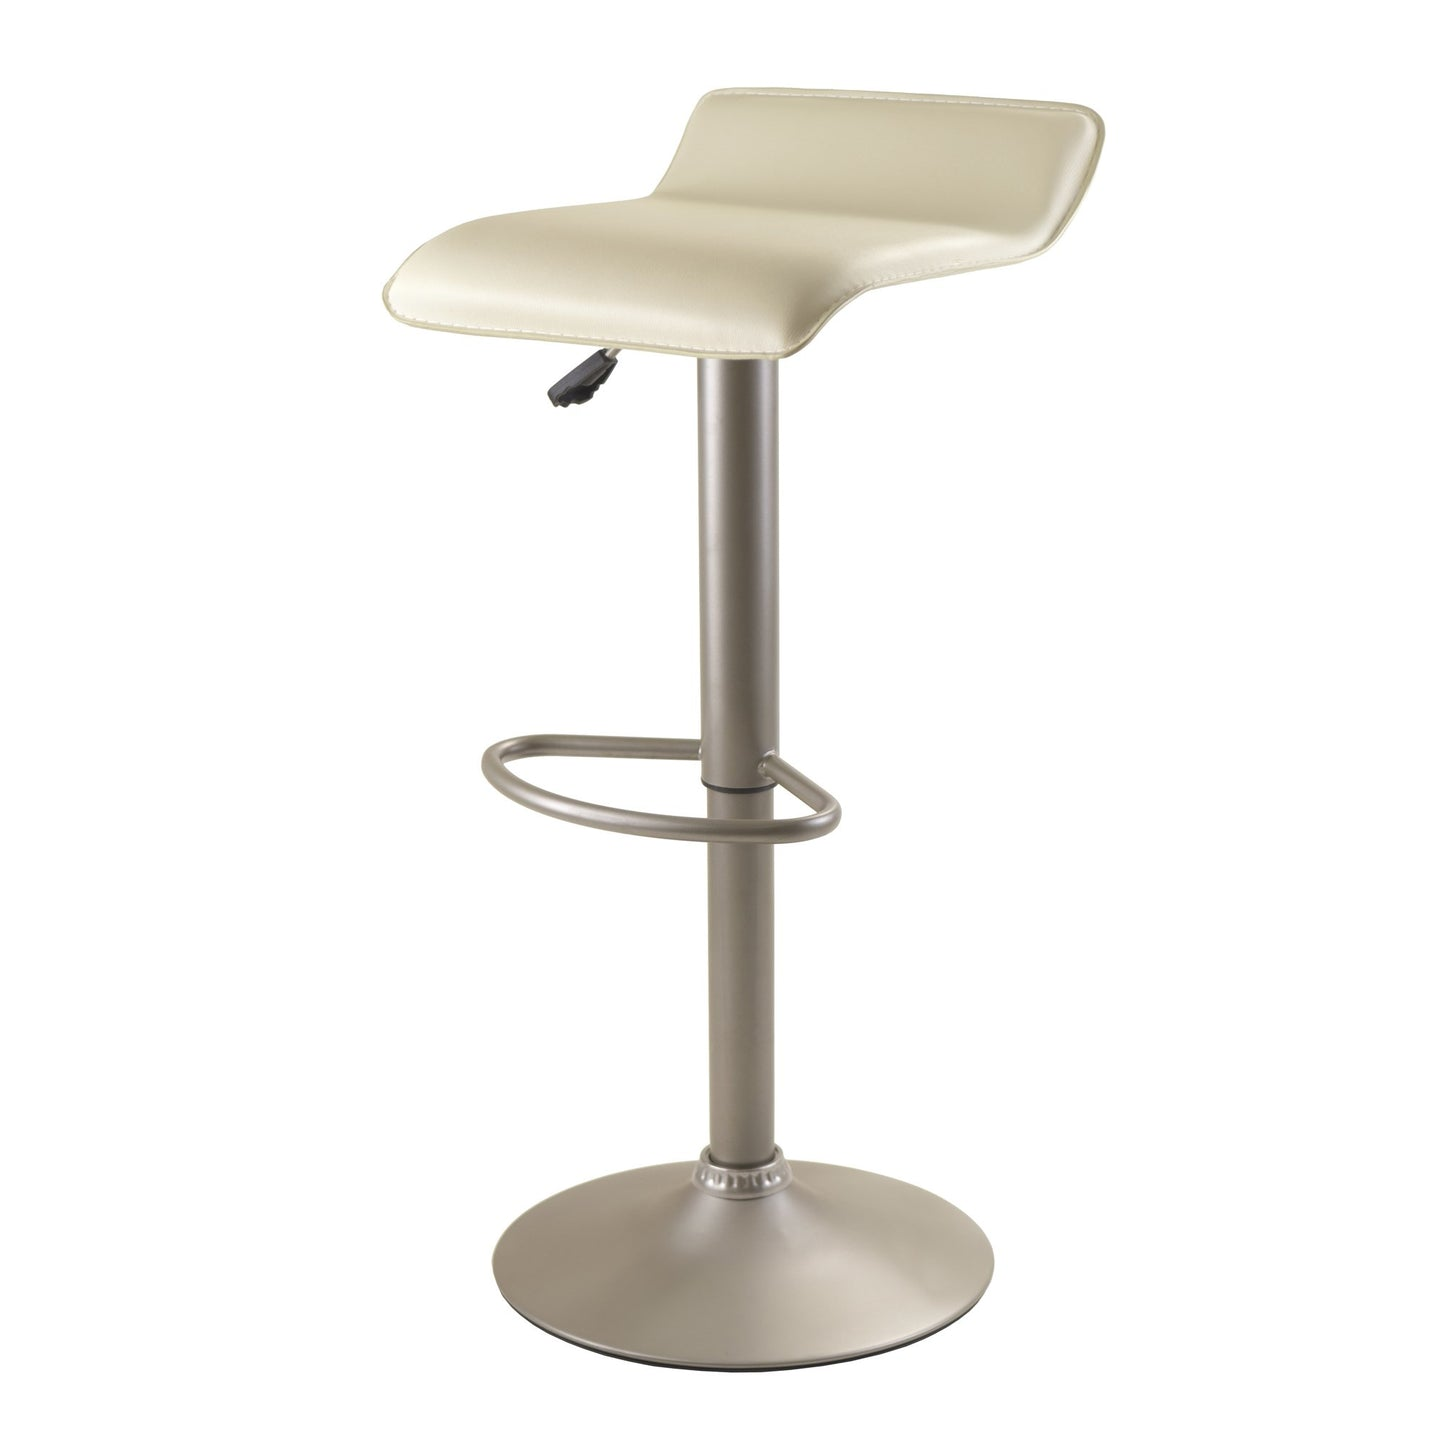 SPECTRUM Low Back Faux Leather Airlift Barstool Beige/Chrome - barsforhomes.com